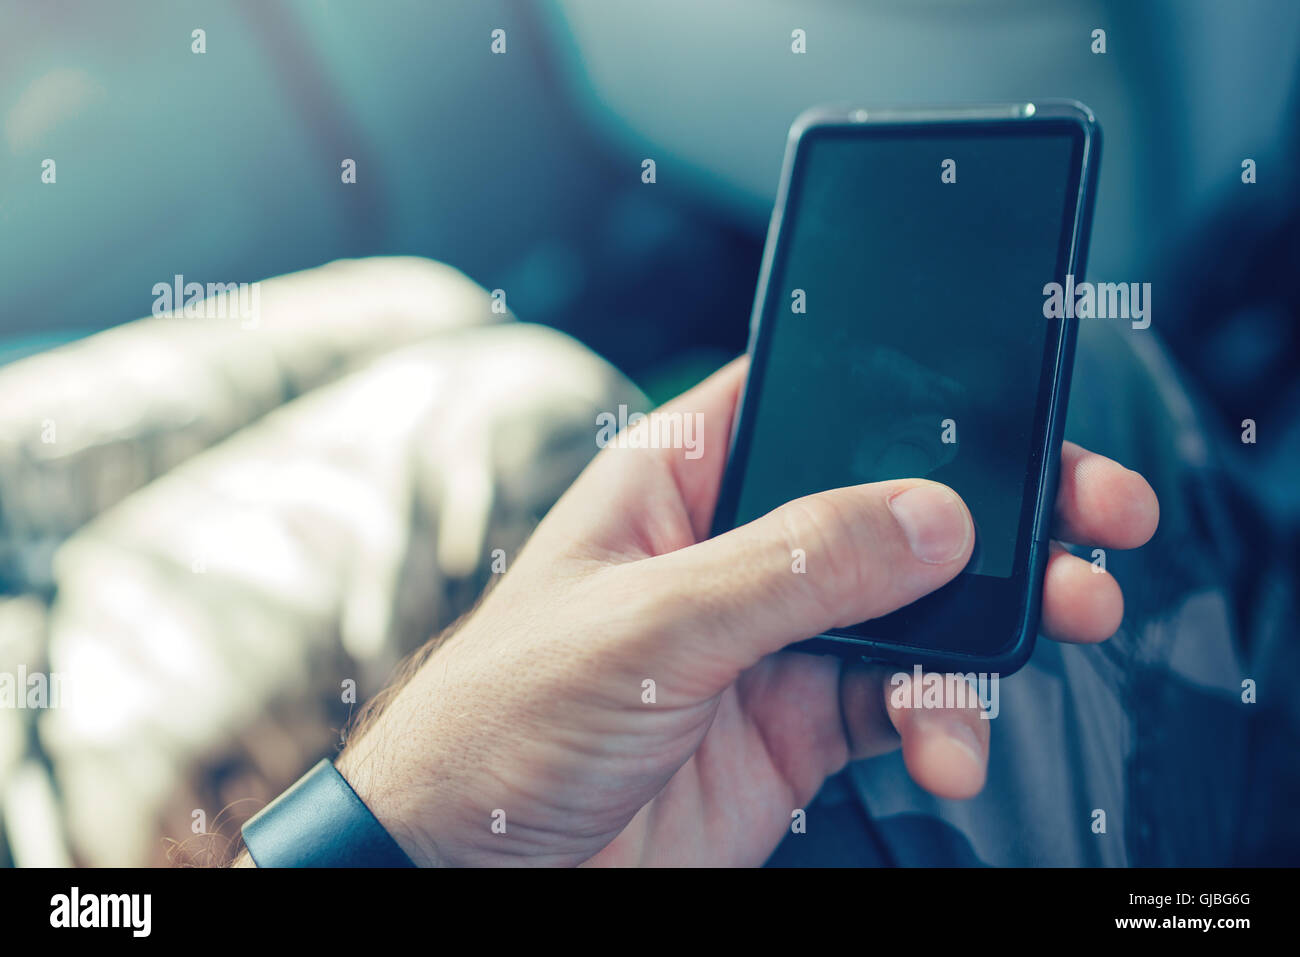 Playing with mobile phone instead of his child, bad role model father using smartphone while his son asks him to - Stock Image